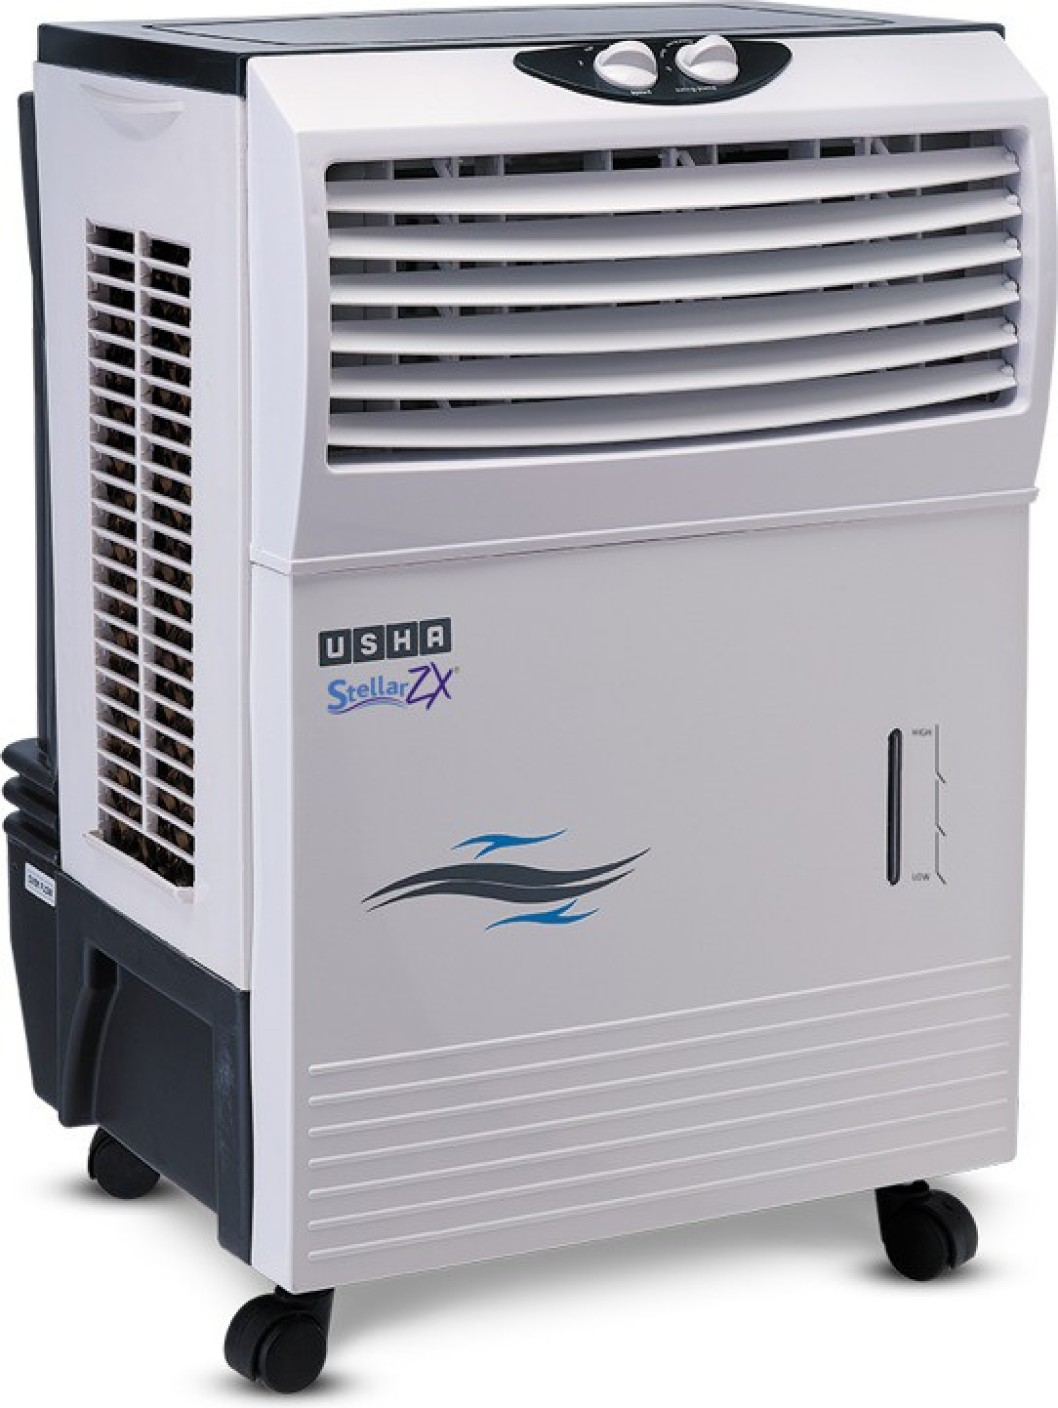 usha stellar zx cp206t personal air cooler price in. Black Bedroom Furniture Sets. Home Design Ideas